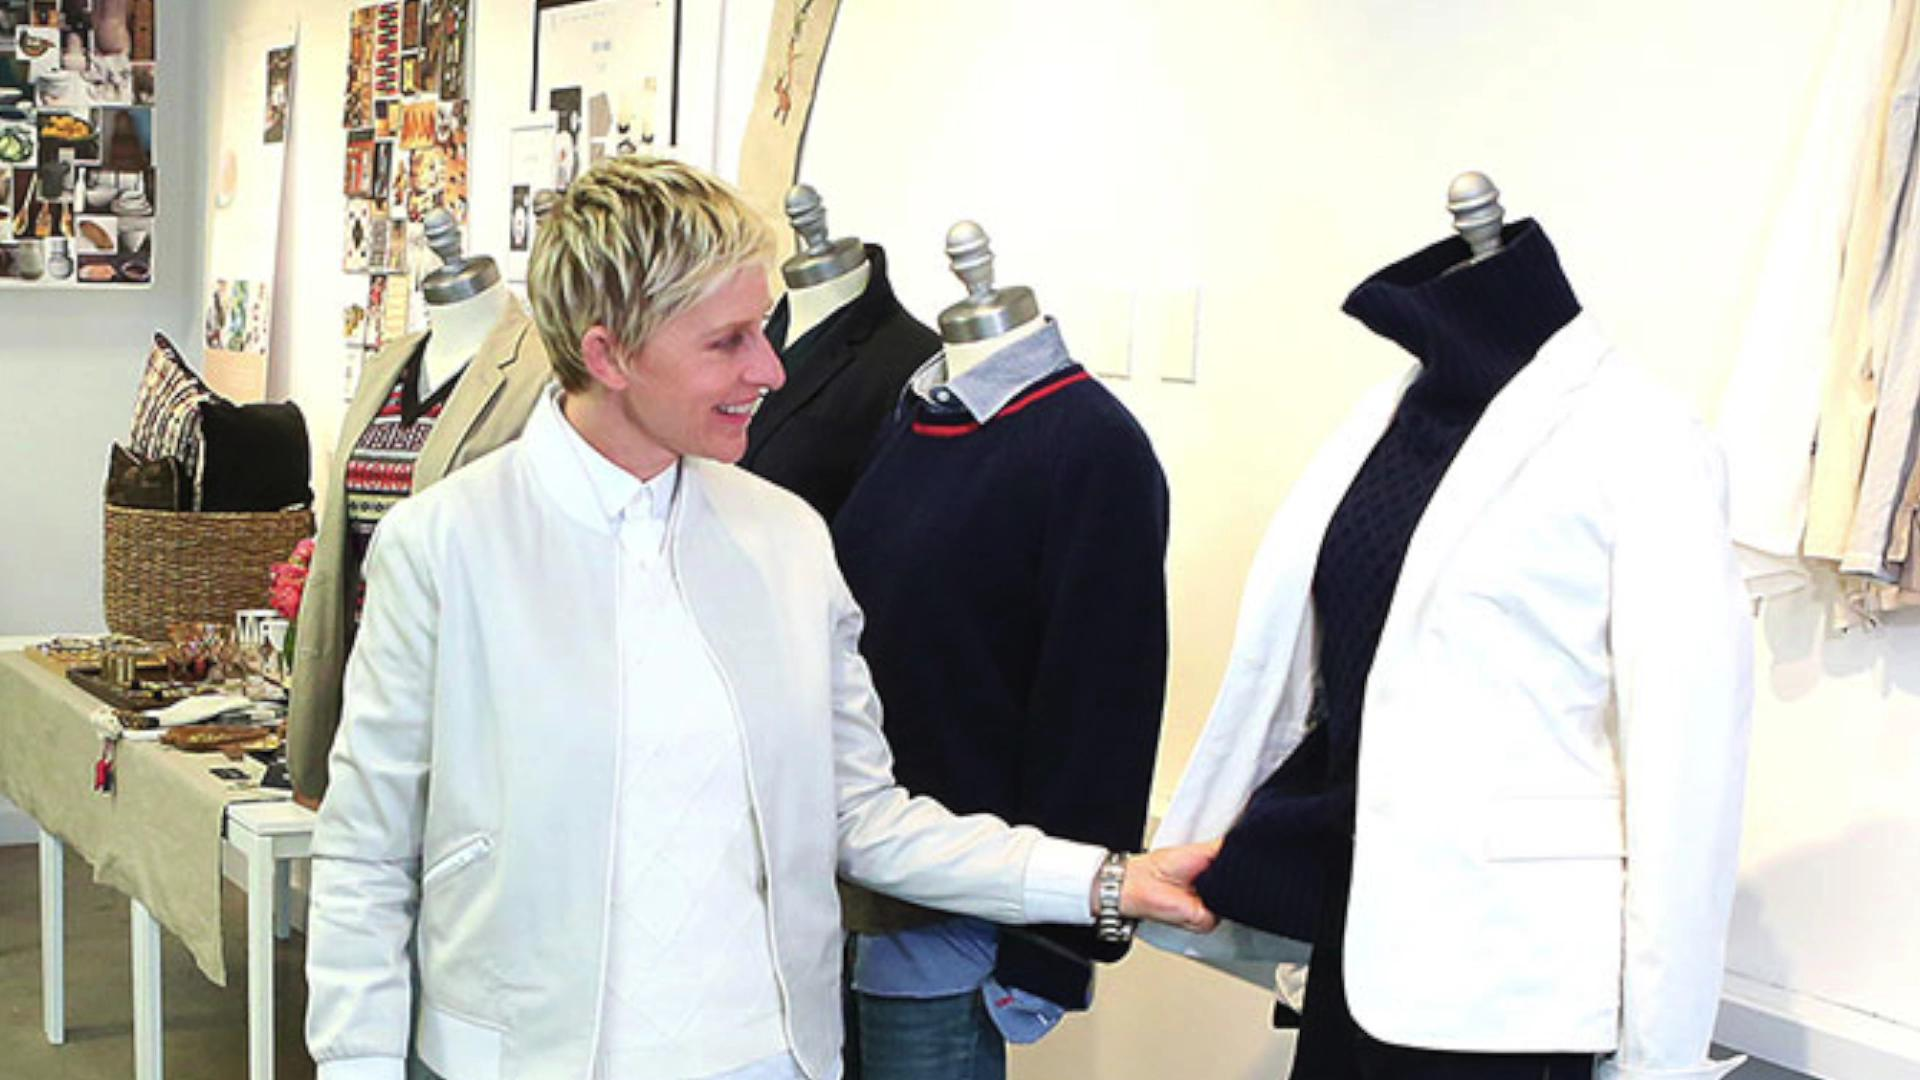 Ellen DeGeneres launching a fashion and housewares line